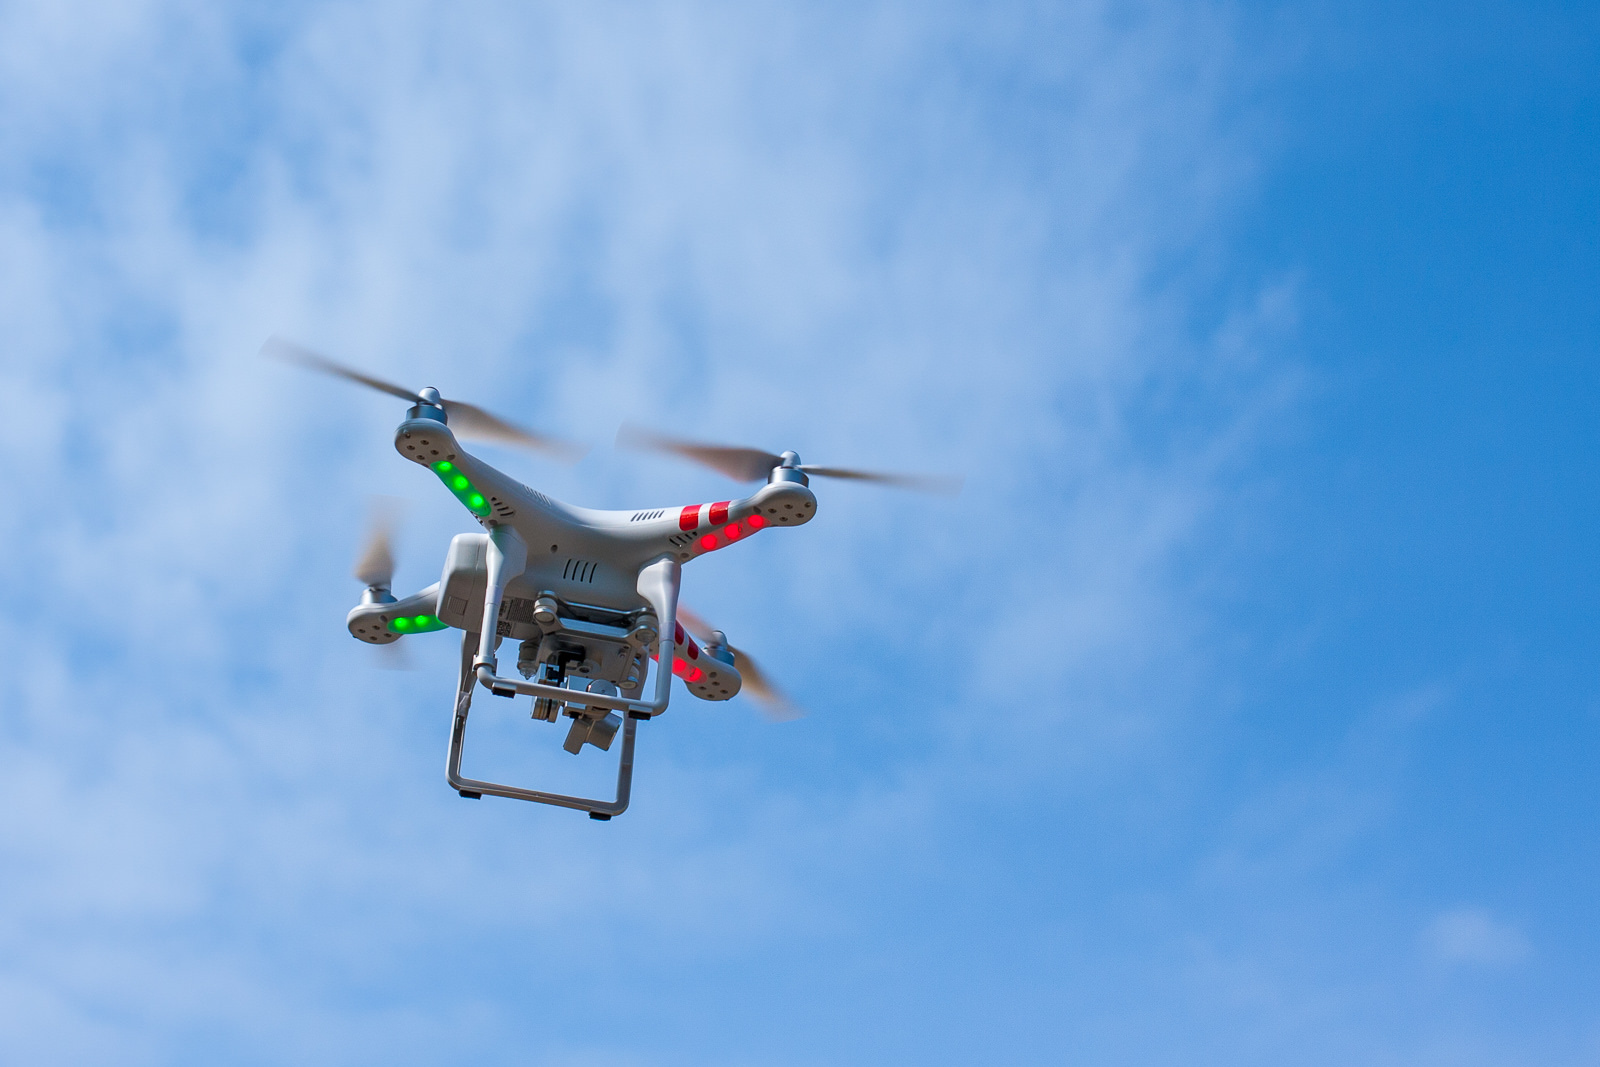 NFL Receives Permission To Use Drones For Filming, Just Not Actual Games